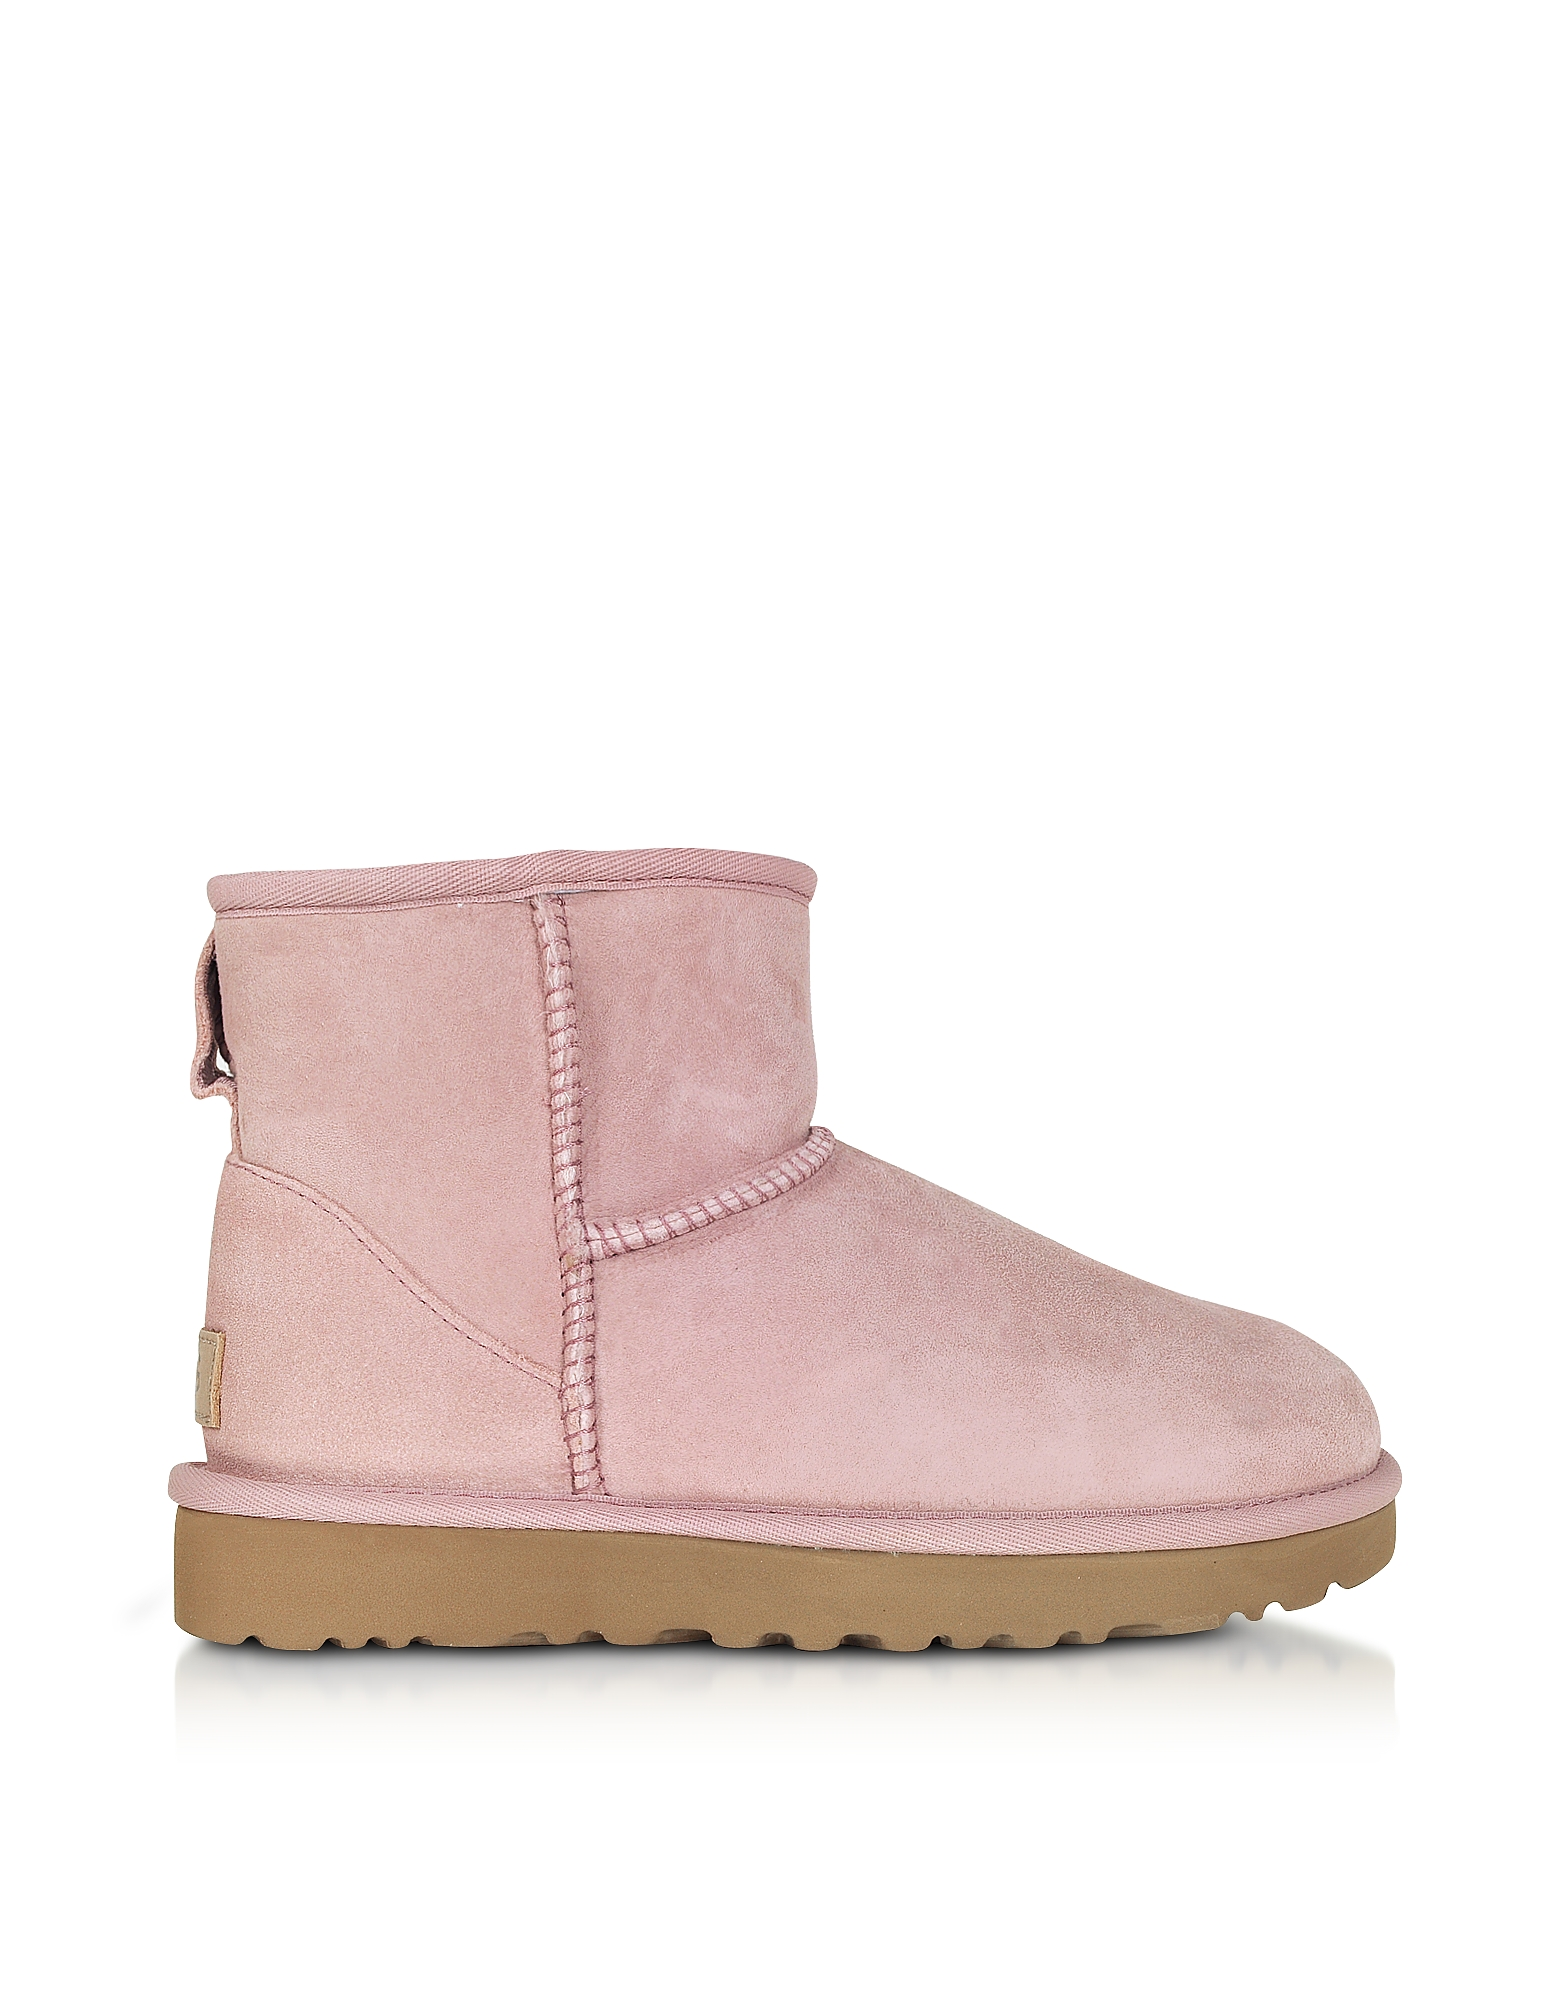 UGG Designer Shoes, Pink Crystal Classic Mini II Boots